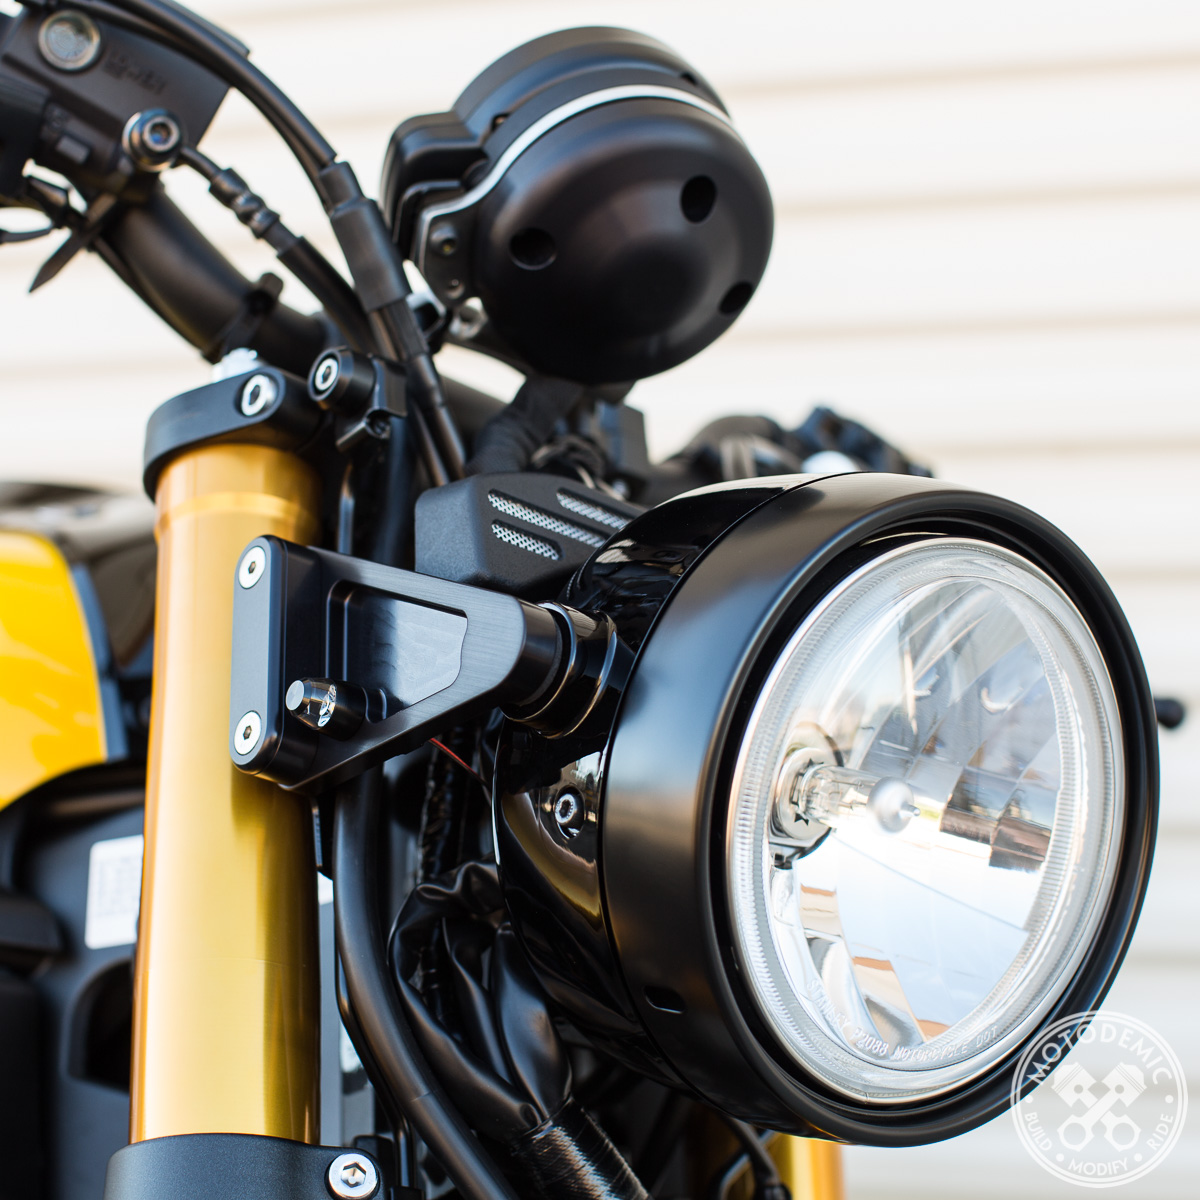 XSR900 Headlight Side Brackets and Gauge Cover